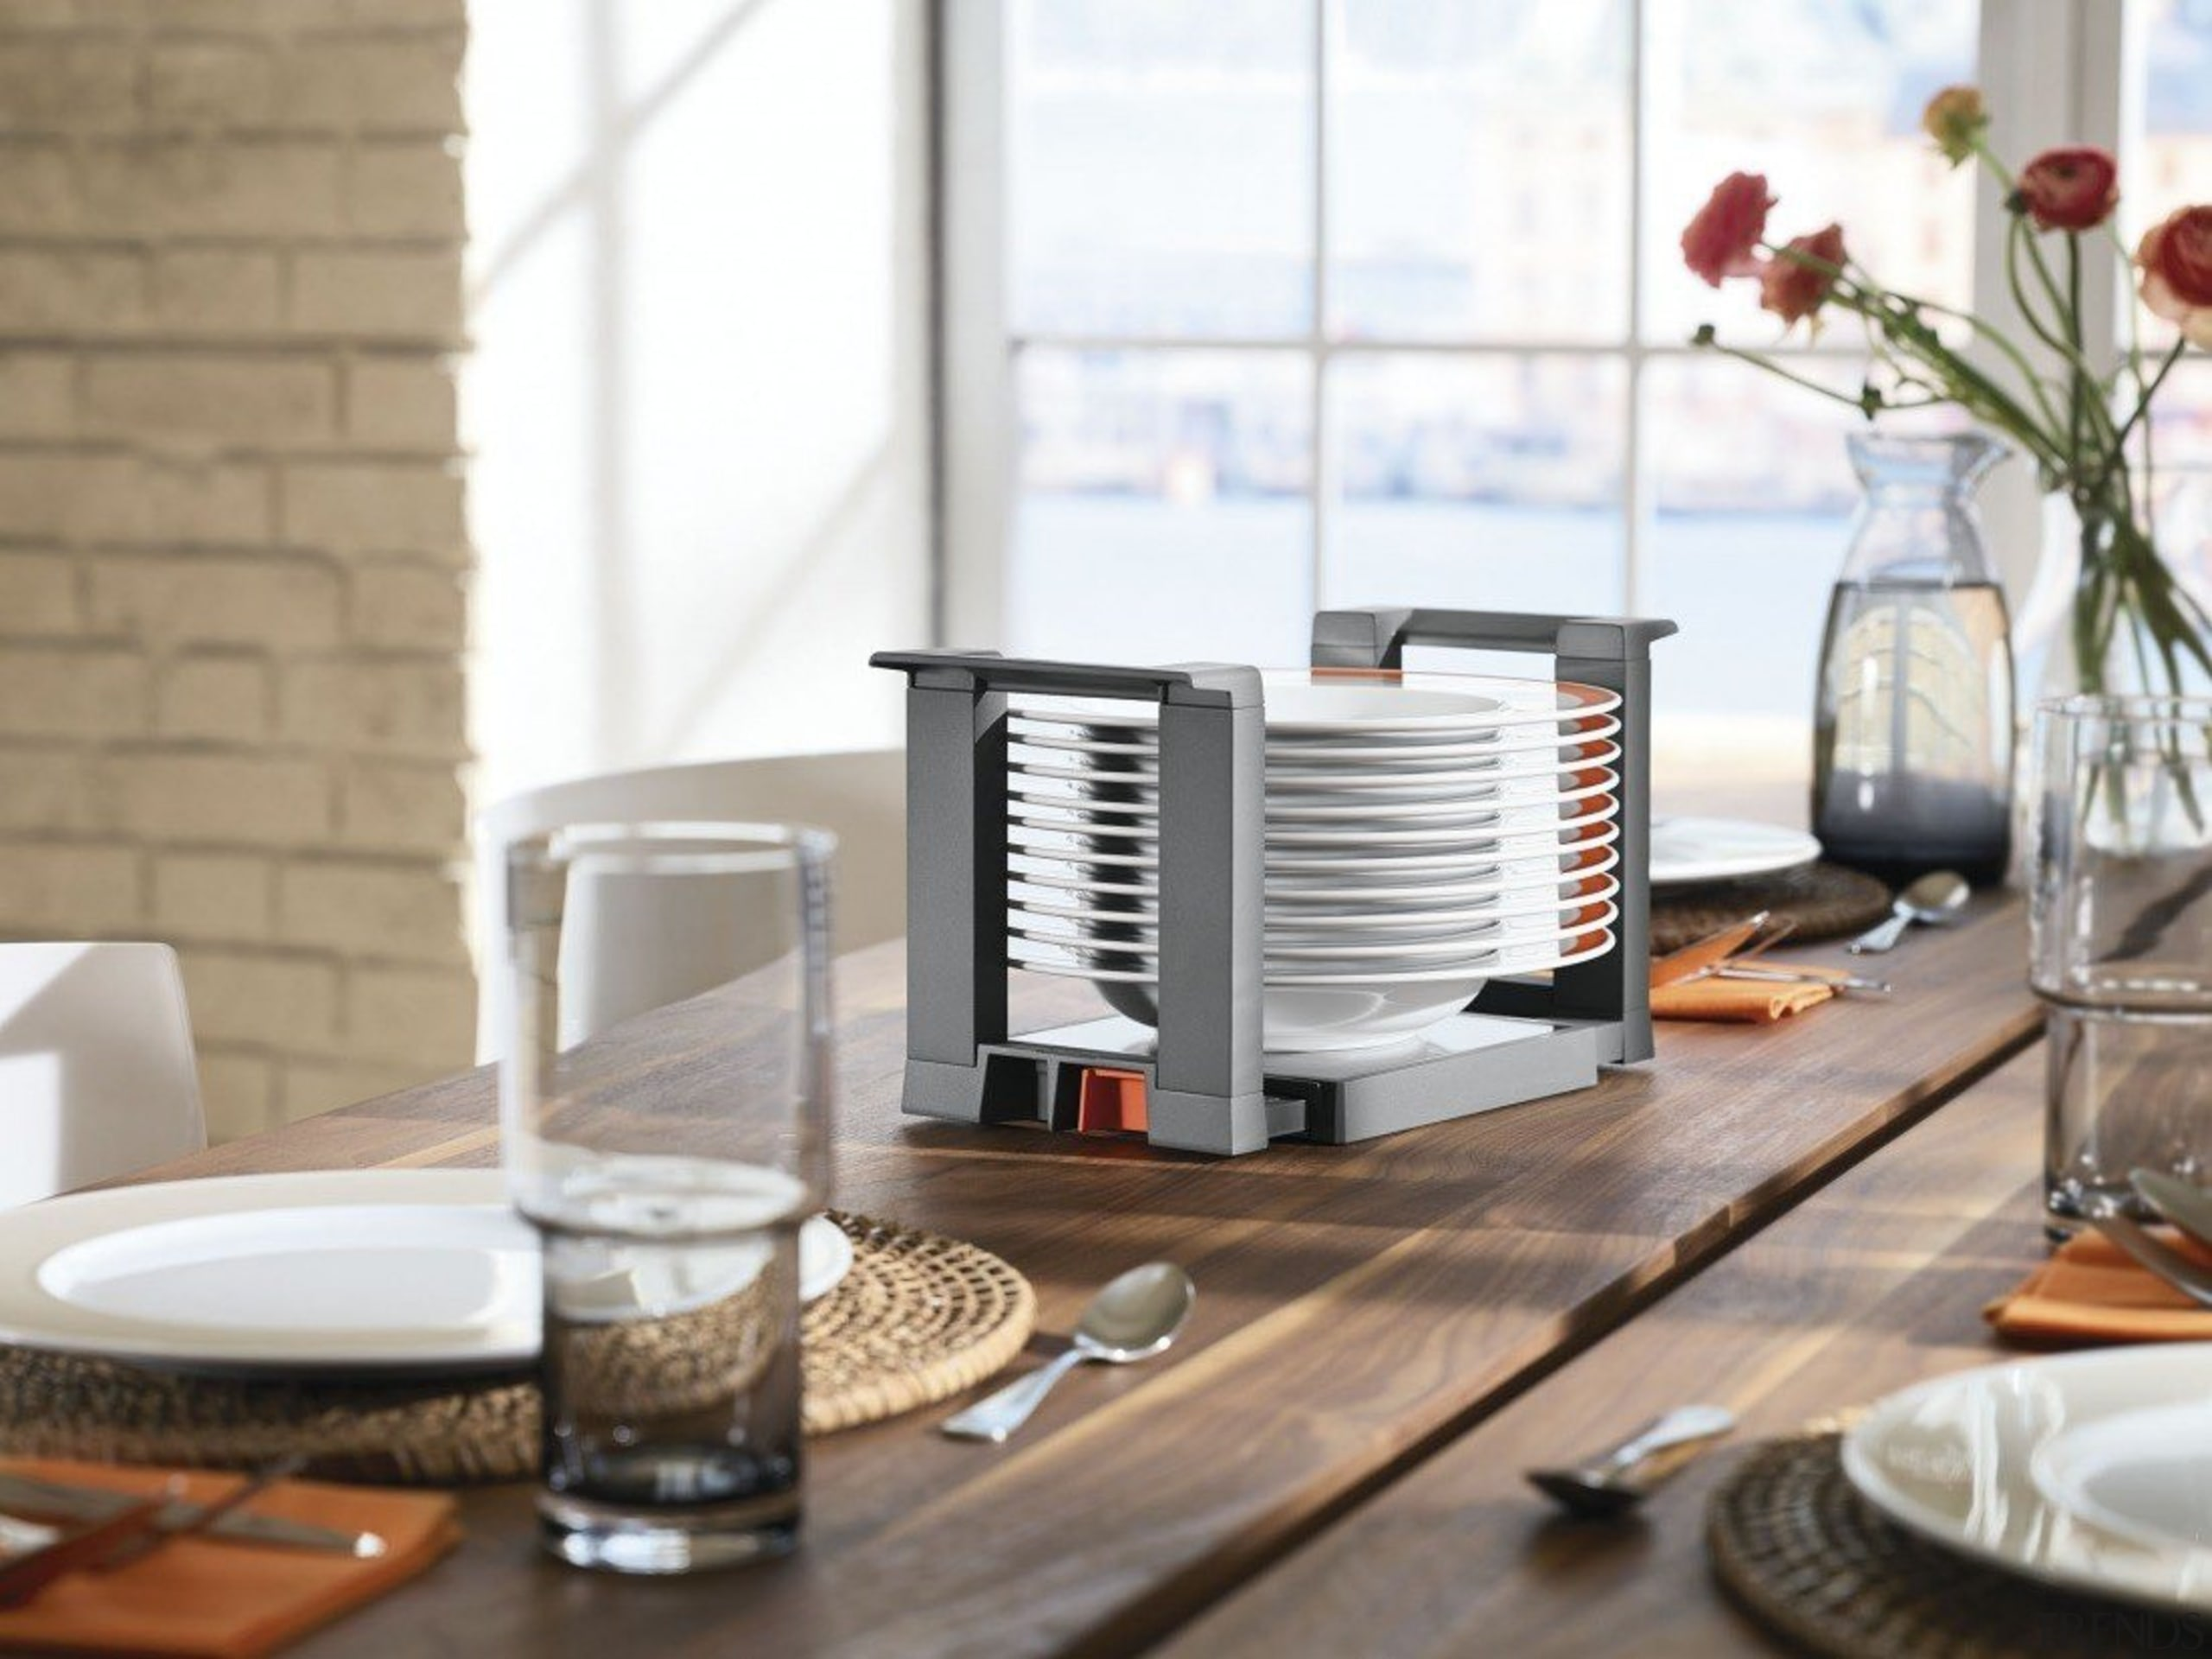 AMBIA-LINE kitchen accessories – organization at its best. furniture, interior design, product design, table, white, gray